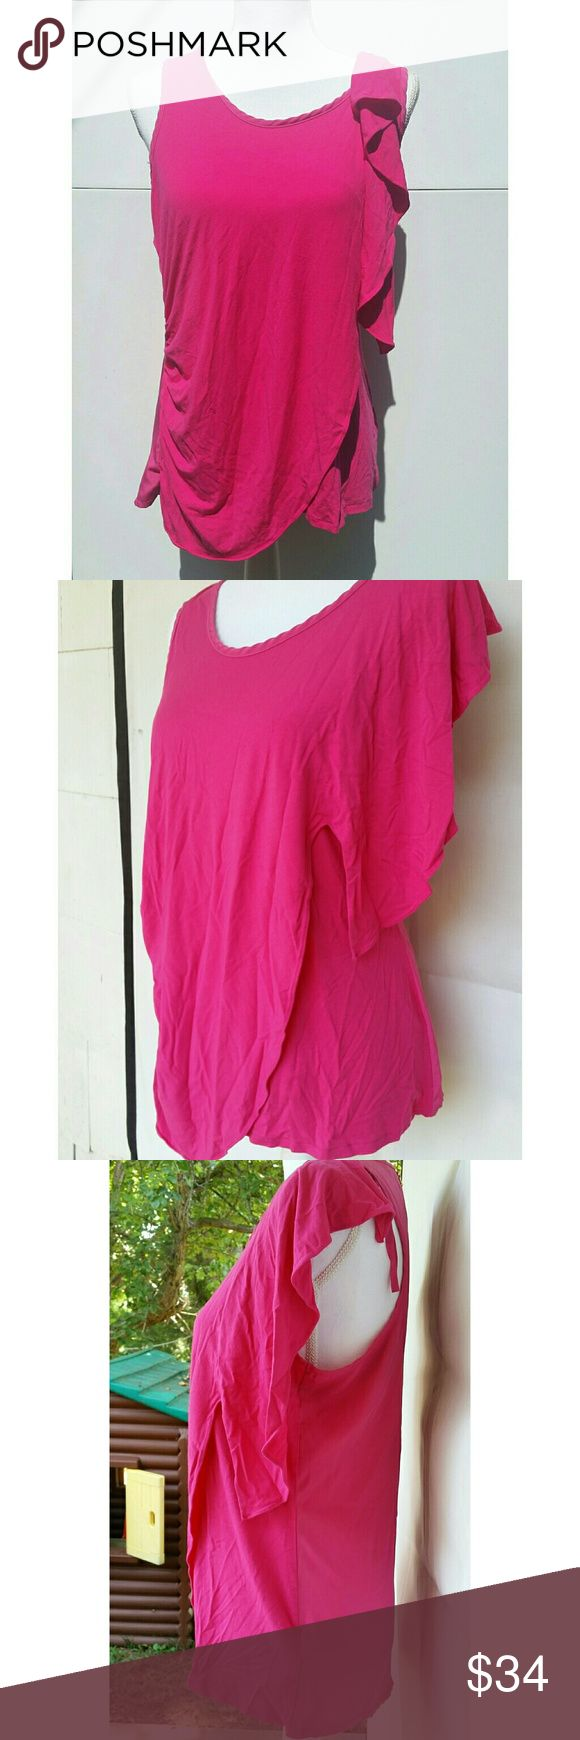 Vince Camuto Hot Pink Top Zipback Scrunch Side Vince Camuto Hot Pink Top Zipback Scrunch Side. Great condition! Hot Pink in color. Size medium. Vince Camuto Tops Blouses